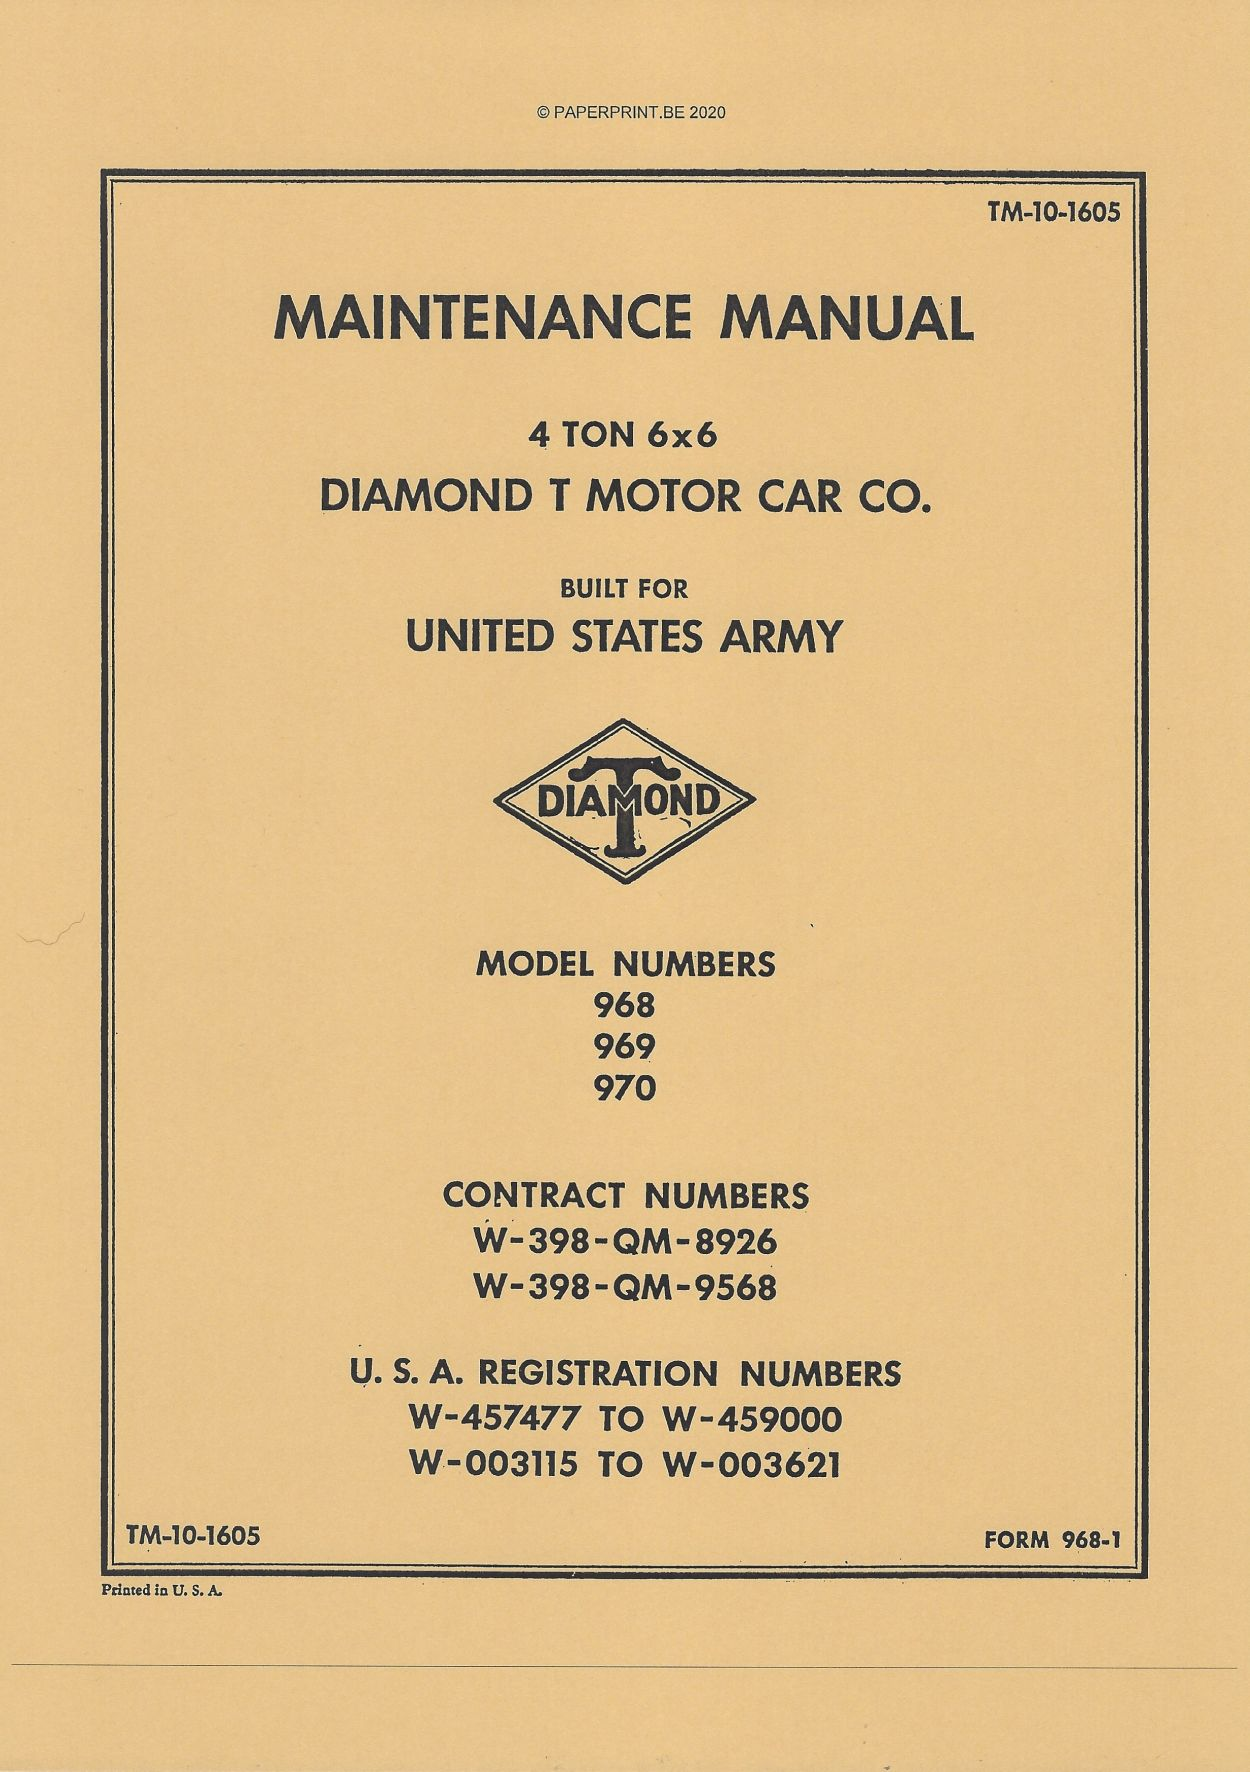 TM 10-1605 US DIAMOND T 4 TON 6x6 TRUCK MAINTENANCE MANUAL